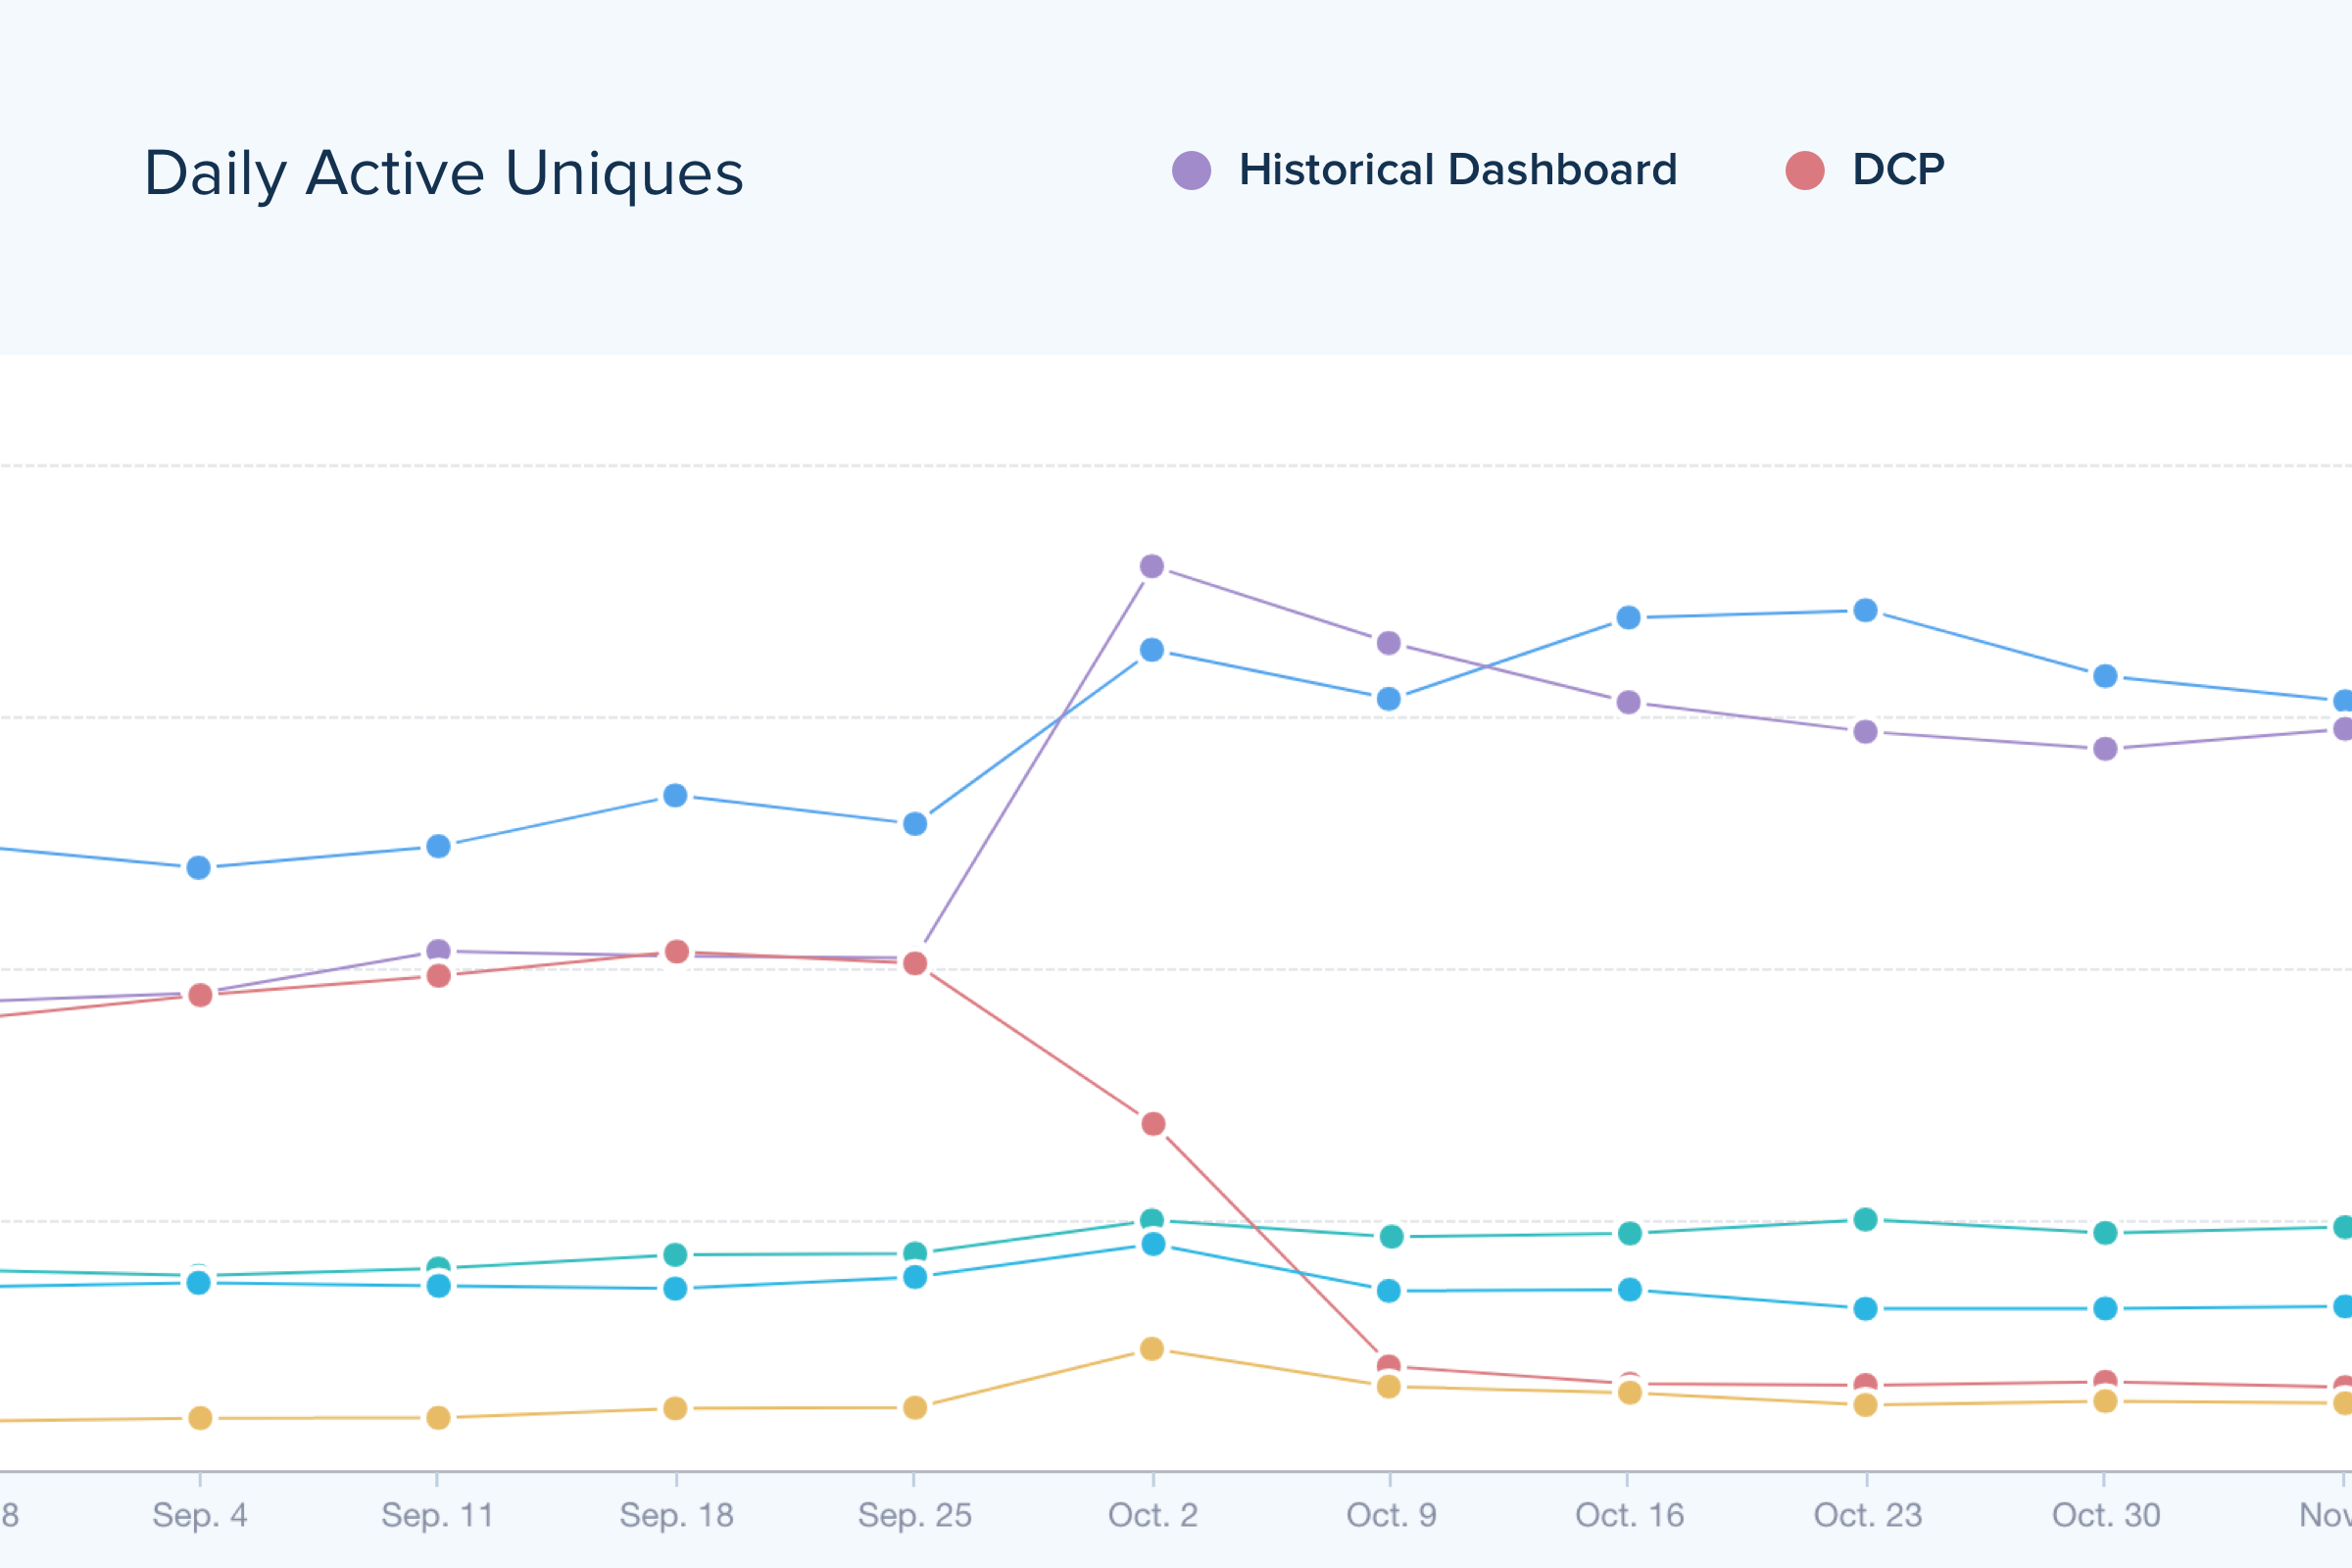 Screenshot of Mixpanel data showing the spike of Historical usage after launch in comparison to our legacy daily report that we originally wanted Historical to replace.